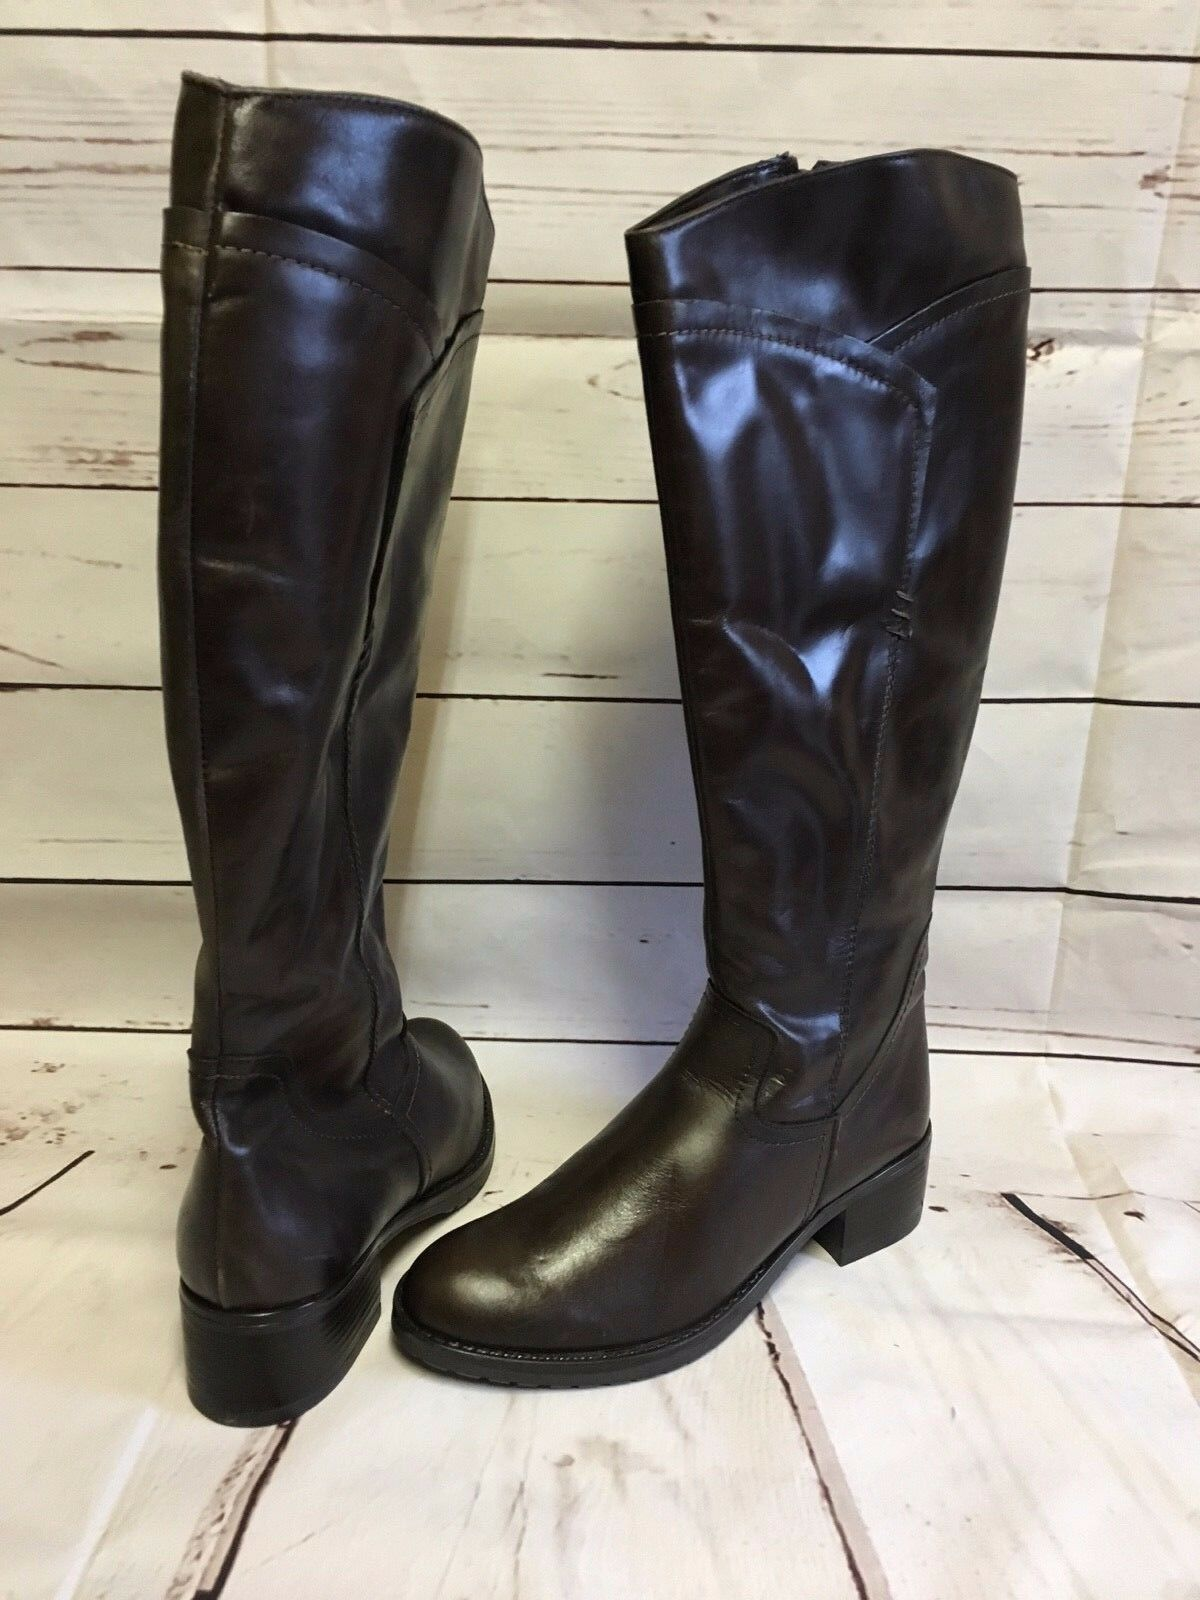 PIE LIBRA DARK BROWN KNEE HIGH ITALIAN LEATHER BOOTS SIZE UK 4 EU 37